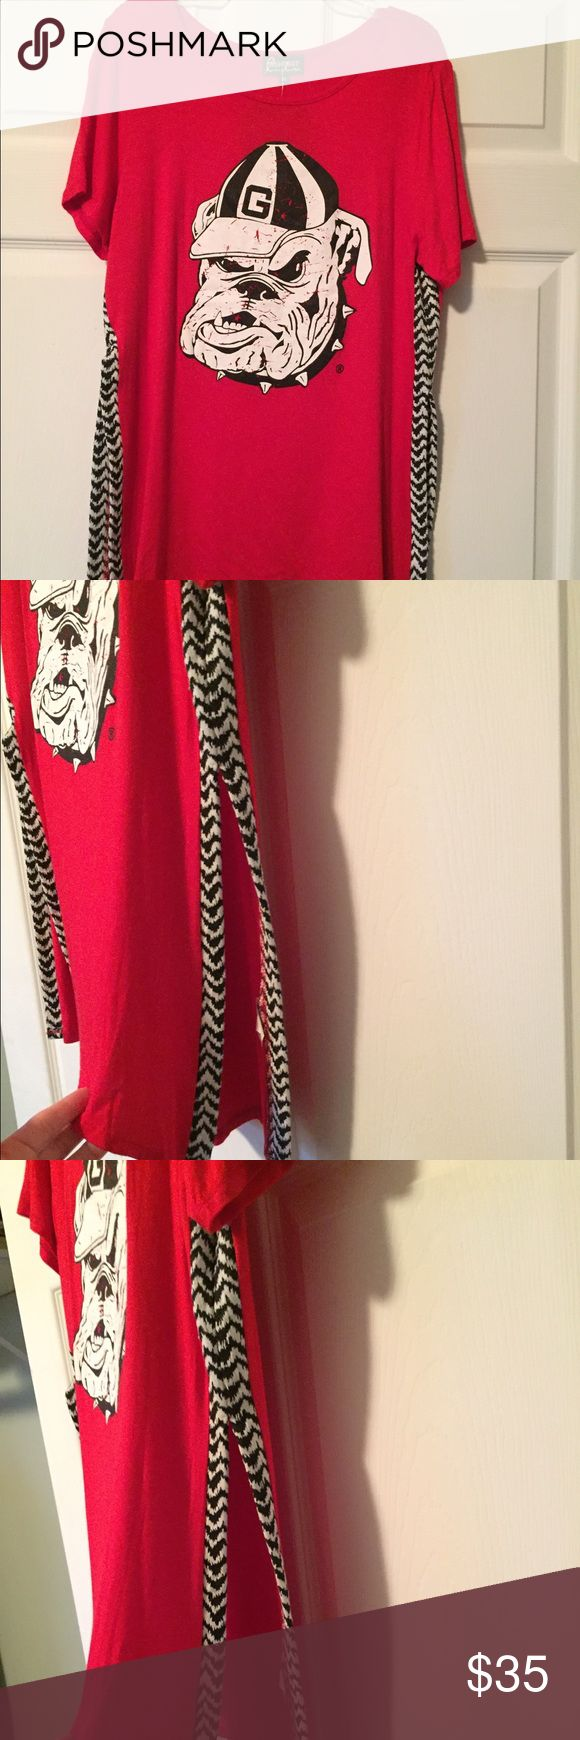 Georgia Bulldogs Shirt Georgia Bulldogs Shirt. Game day Couture Tunic with side split, houndstooth print on sides, NWT. LOVE! 💖 Gameday Coutoure Tops Tunics